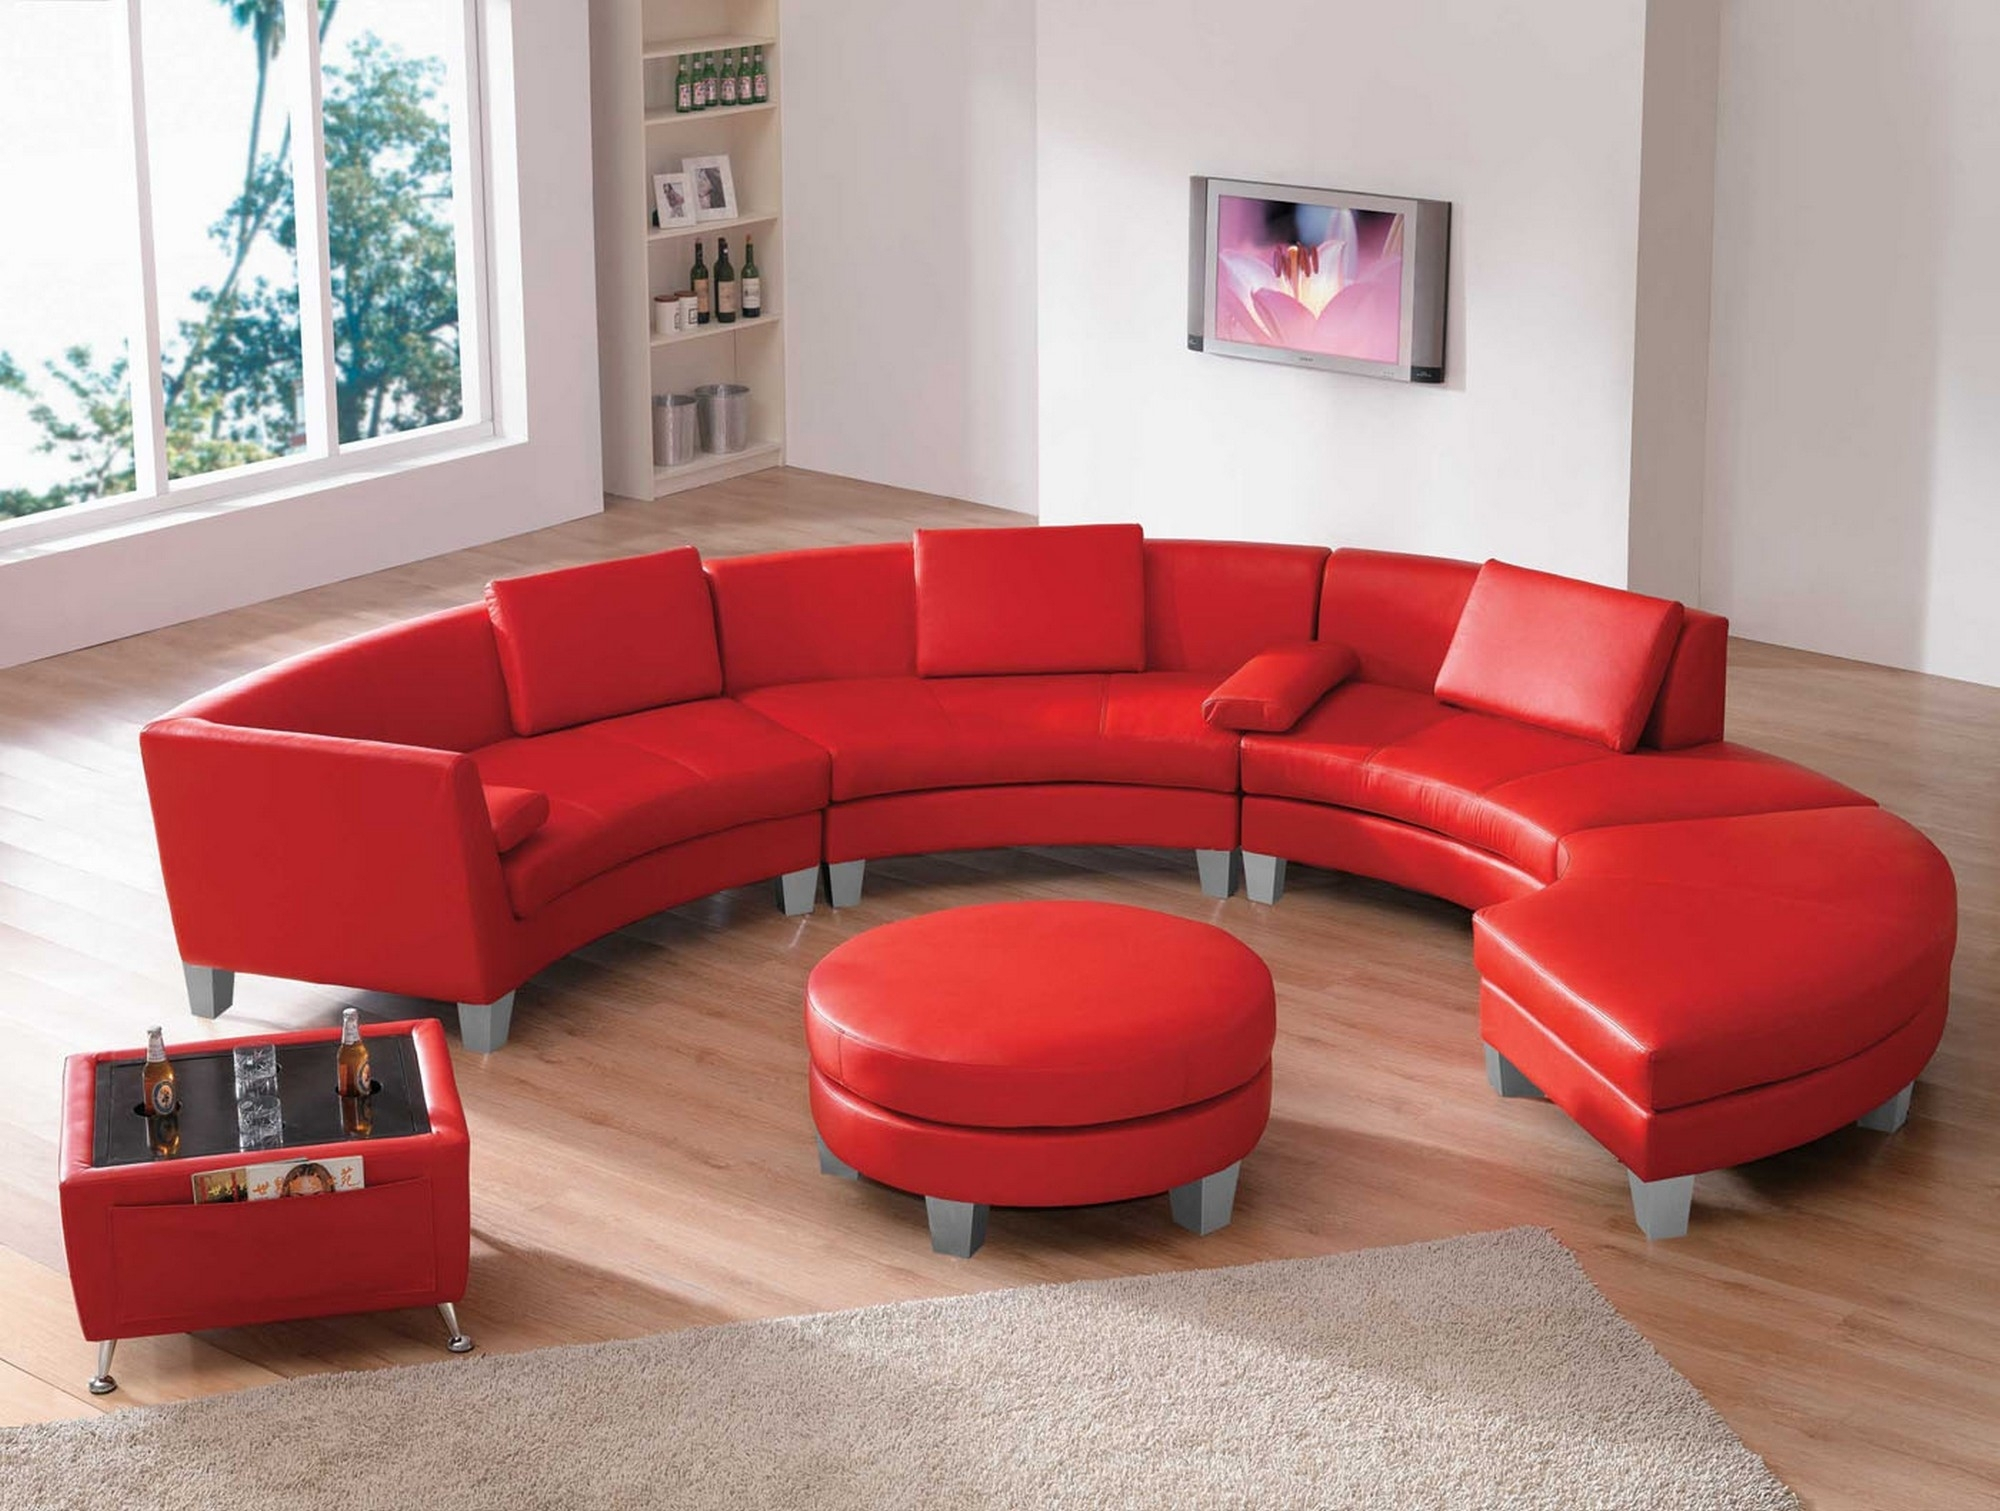 Sofa: Modern Living Room With Leather Sofa Interior Design Leather Inside Red Sectional Sofas With Ottoman (Image 10 of 10)